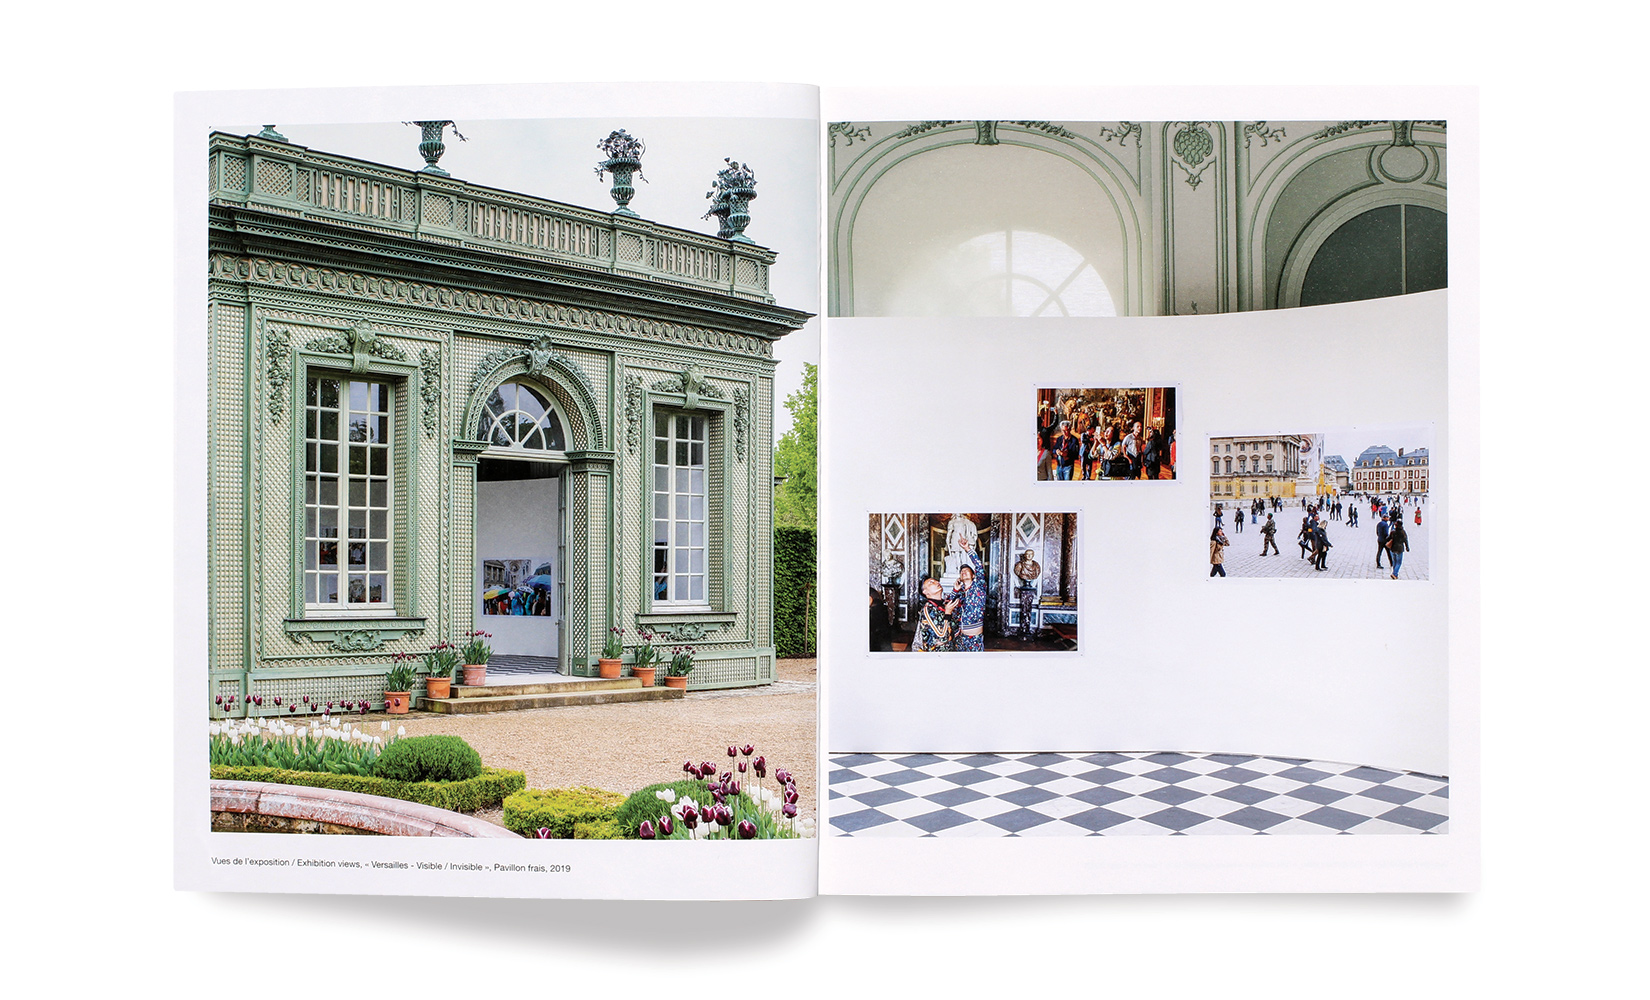 versailles-visible-invisible-toluca-studio-olivier-andreotti-MARTIN-PARR-2.jpg